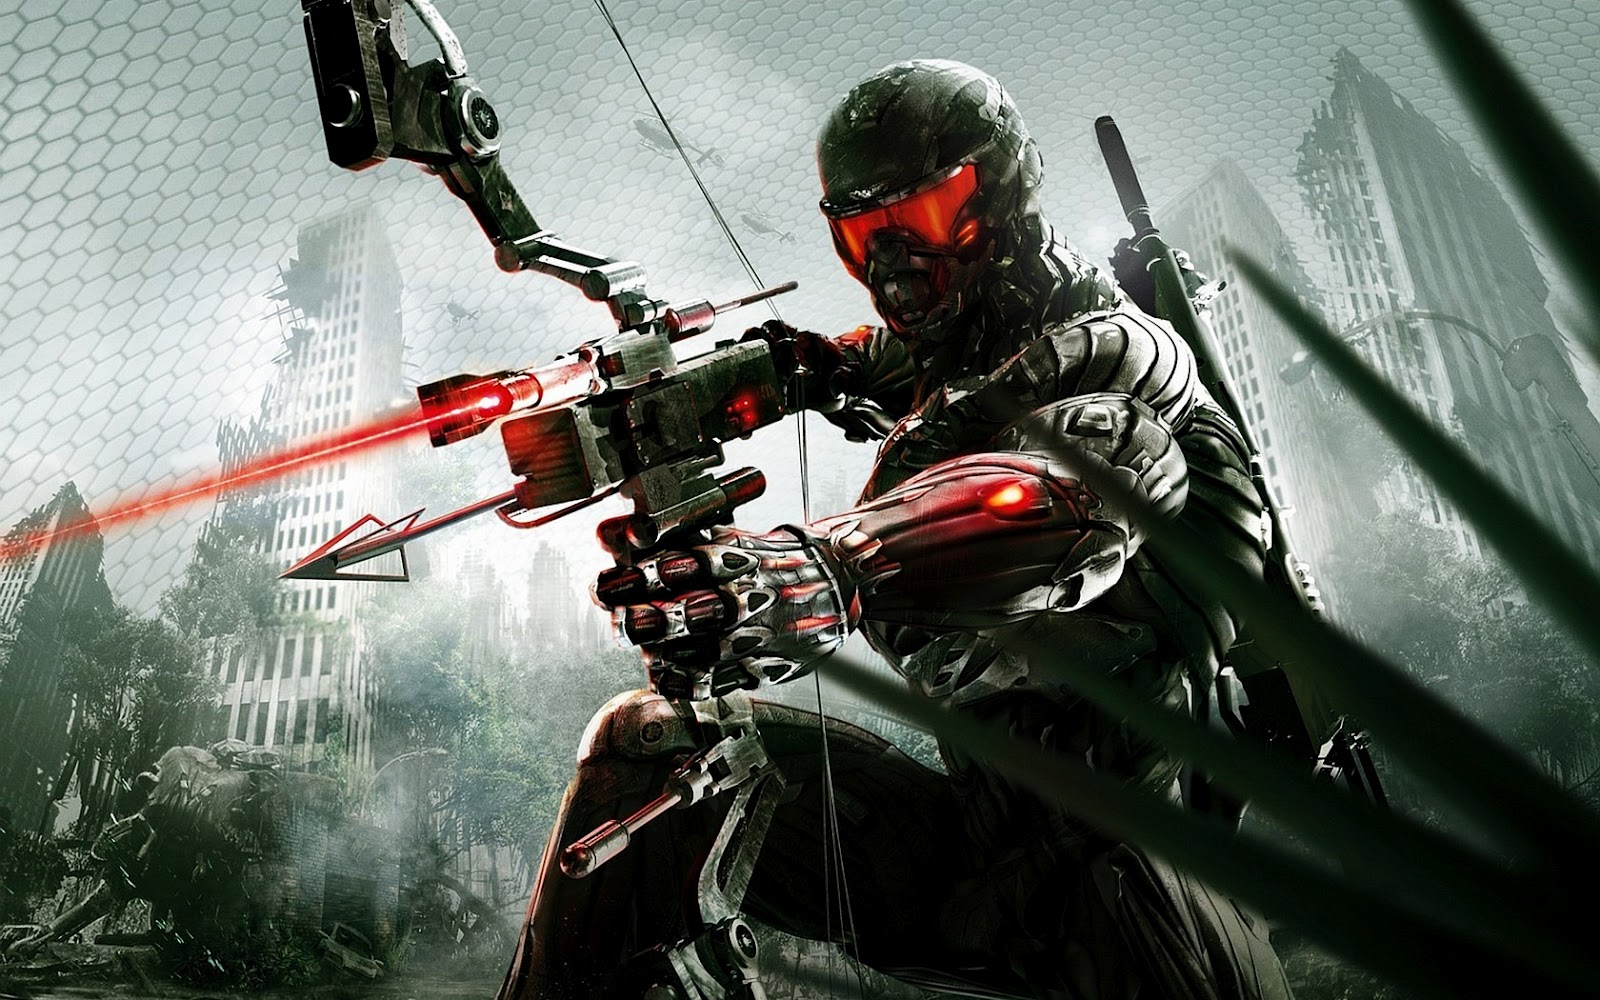 Best Hd Game Wallpapers Wallpapers Quality 1600x1000